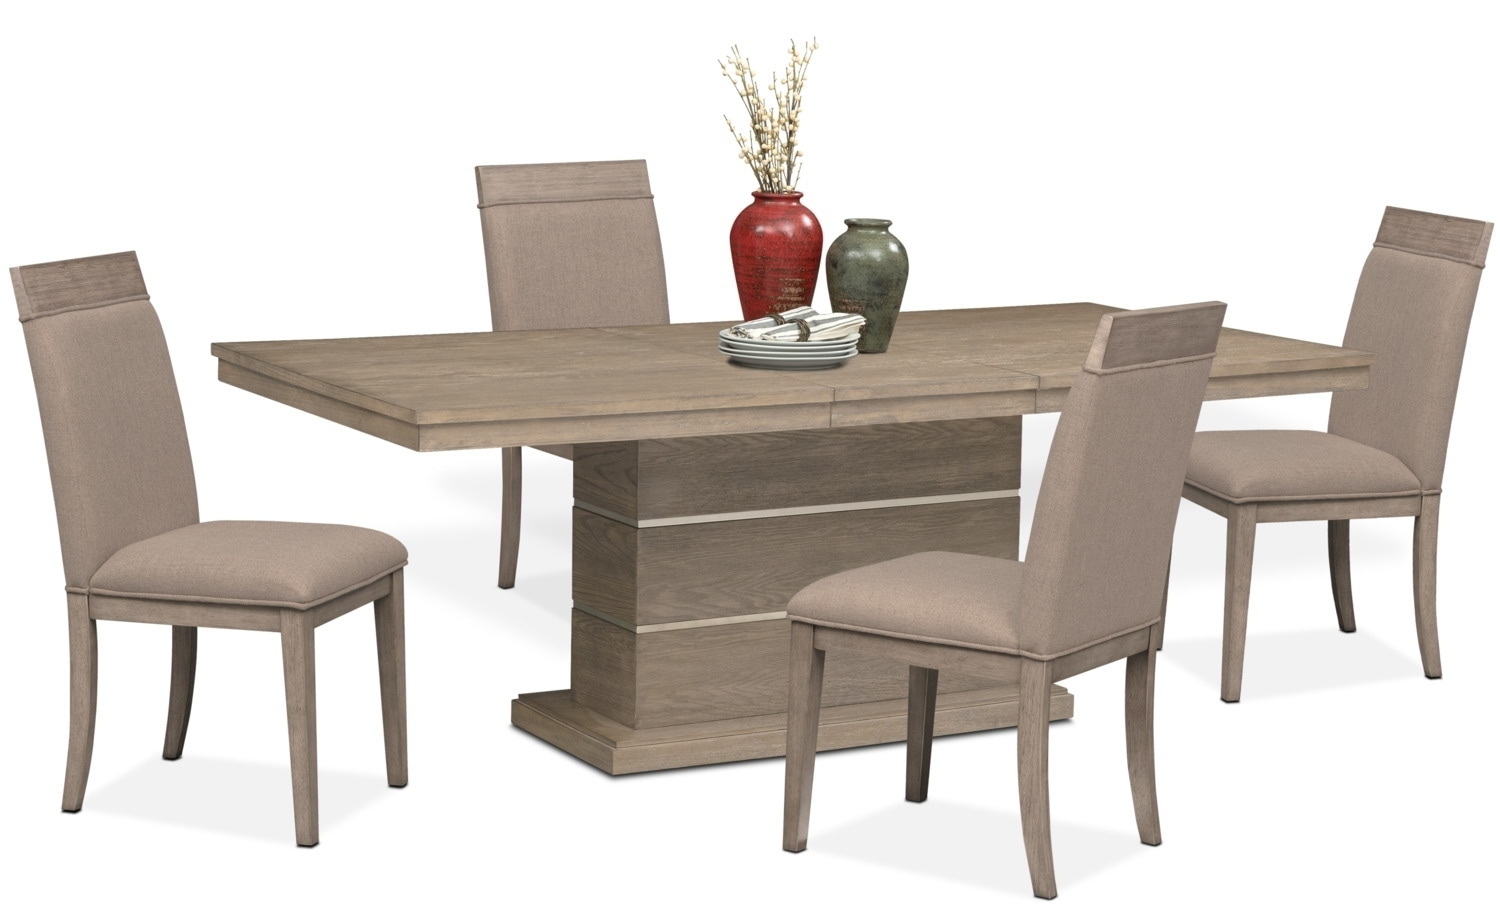 Gavin Pedestal Table And 4 Side Chairs – Graystone | American With Regard To Most Popular Gavin 6 Piece Dining Sets With Clint Side Chairs (Image 5 of 20)